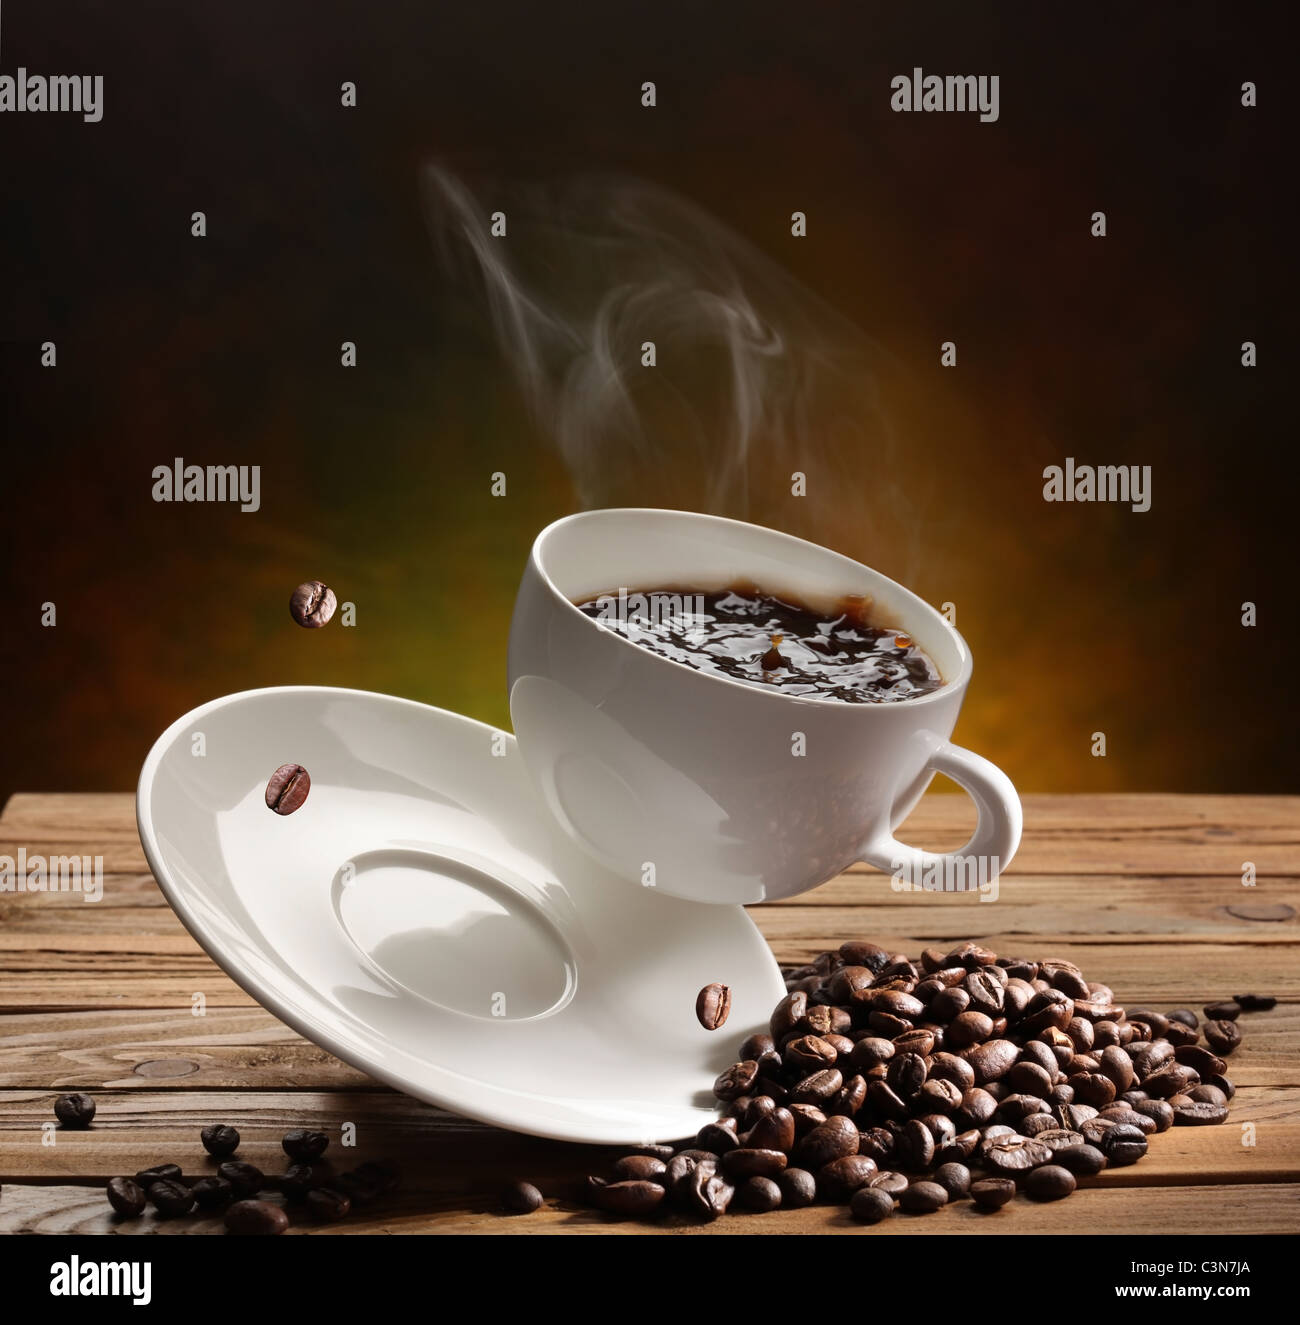 Falling coffee cup on the table - Stock Image